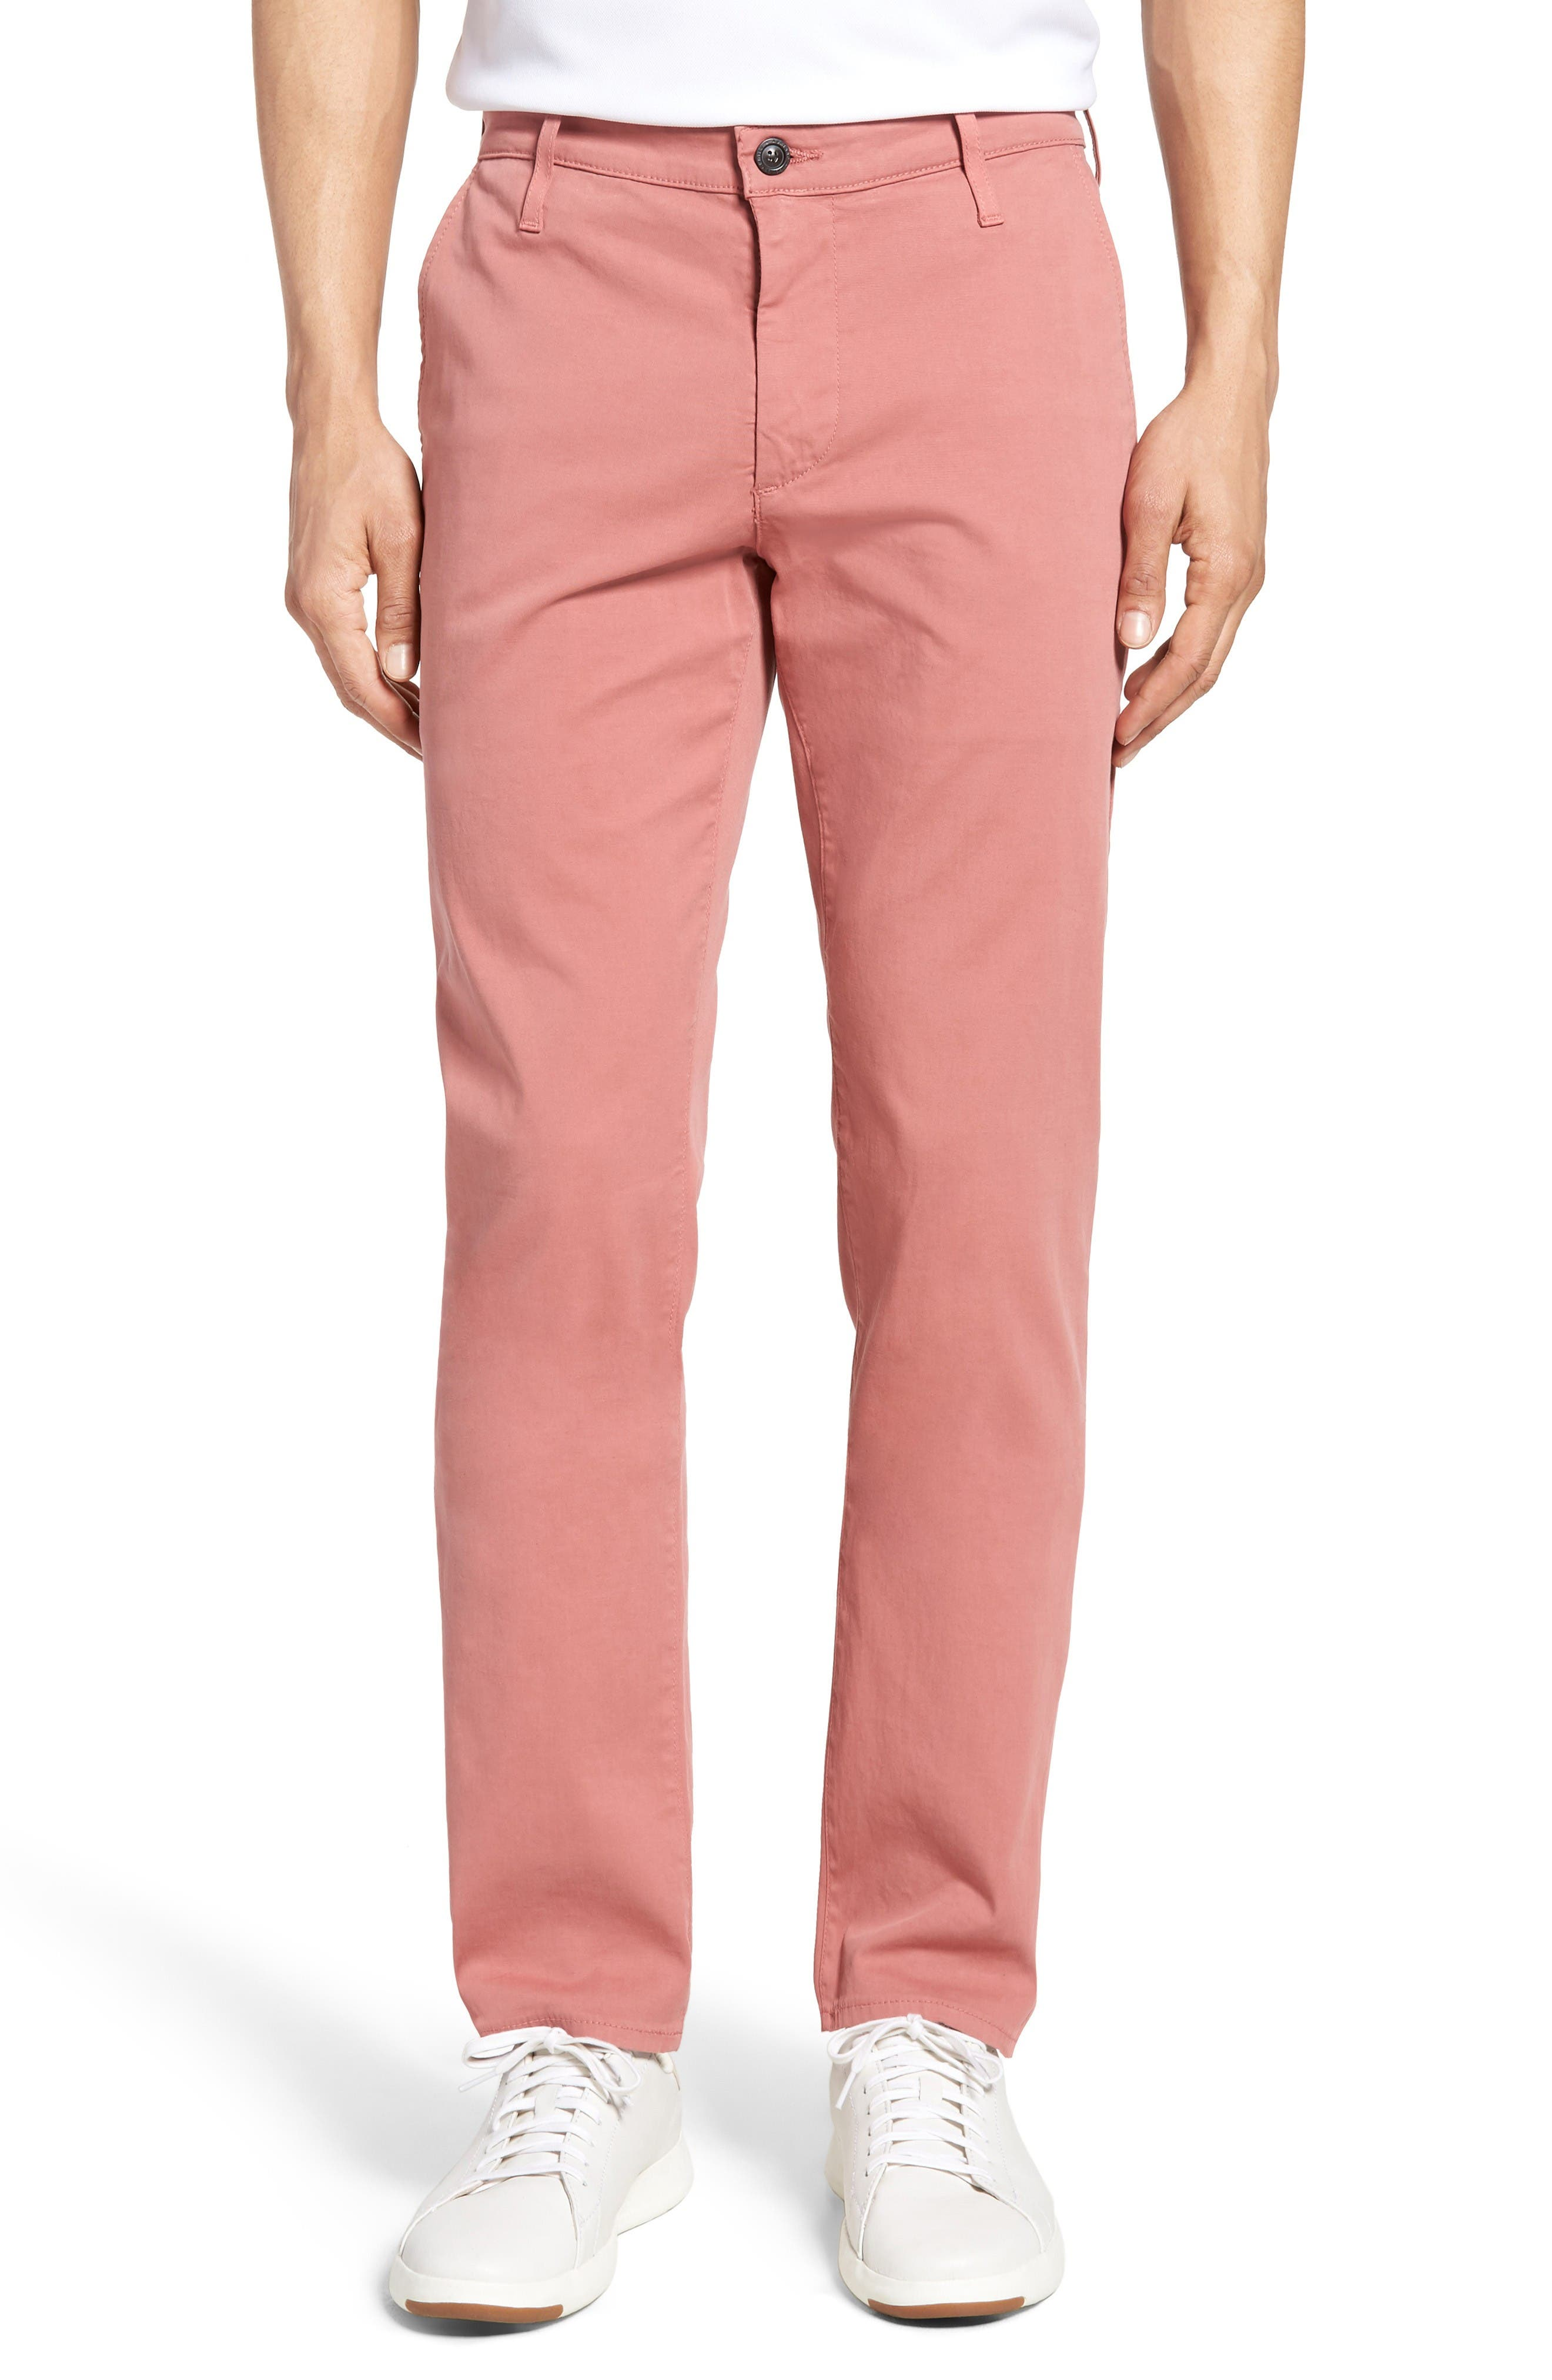 AG The Graduate Trousers